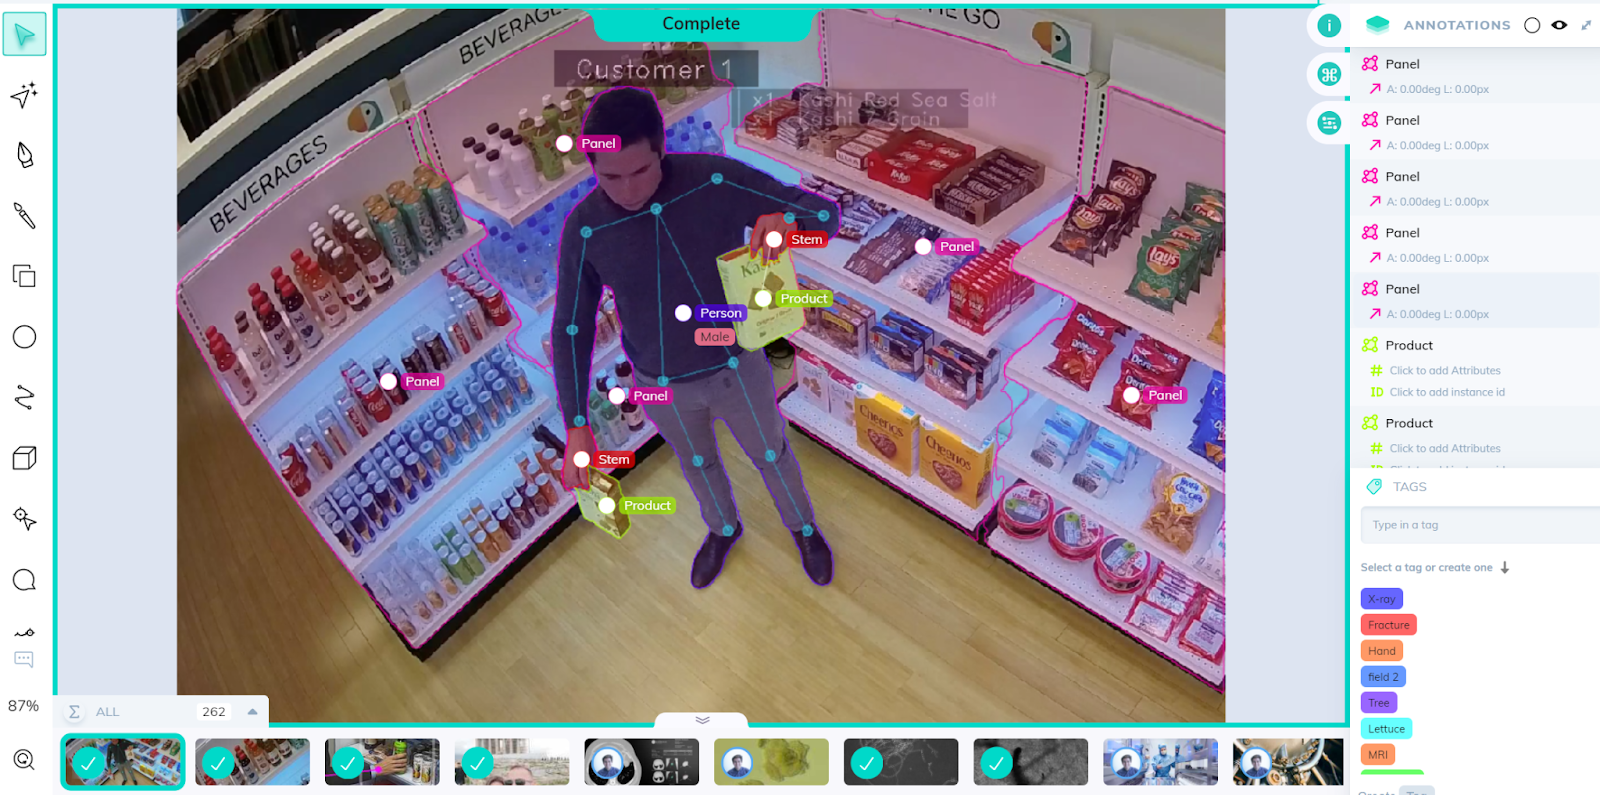 Person and product detection in a store using CCTV camera footage.